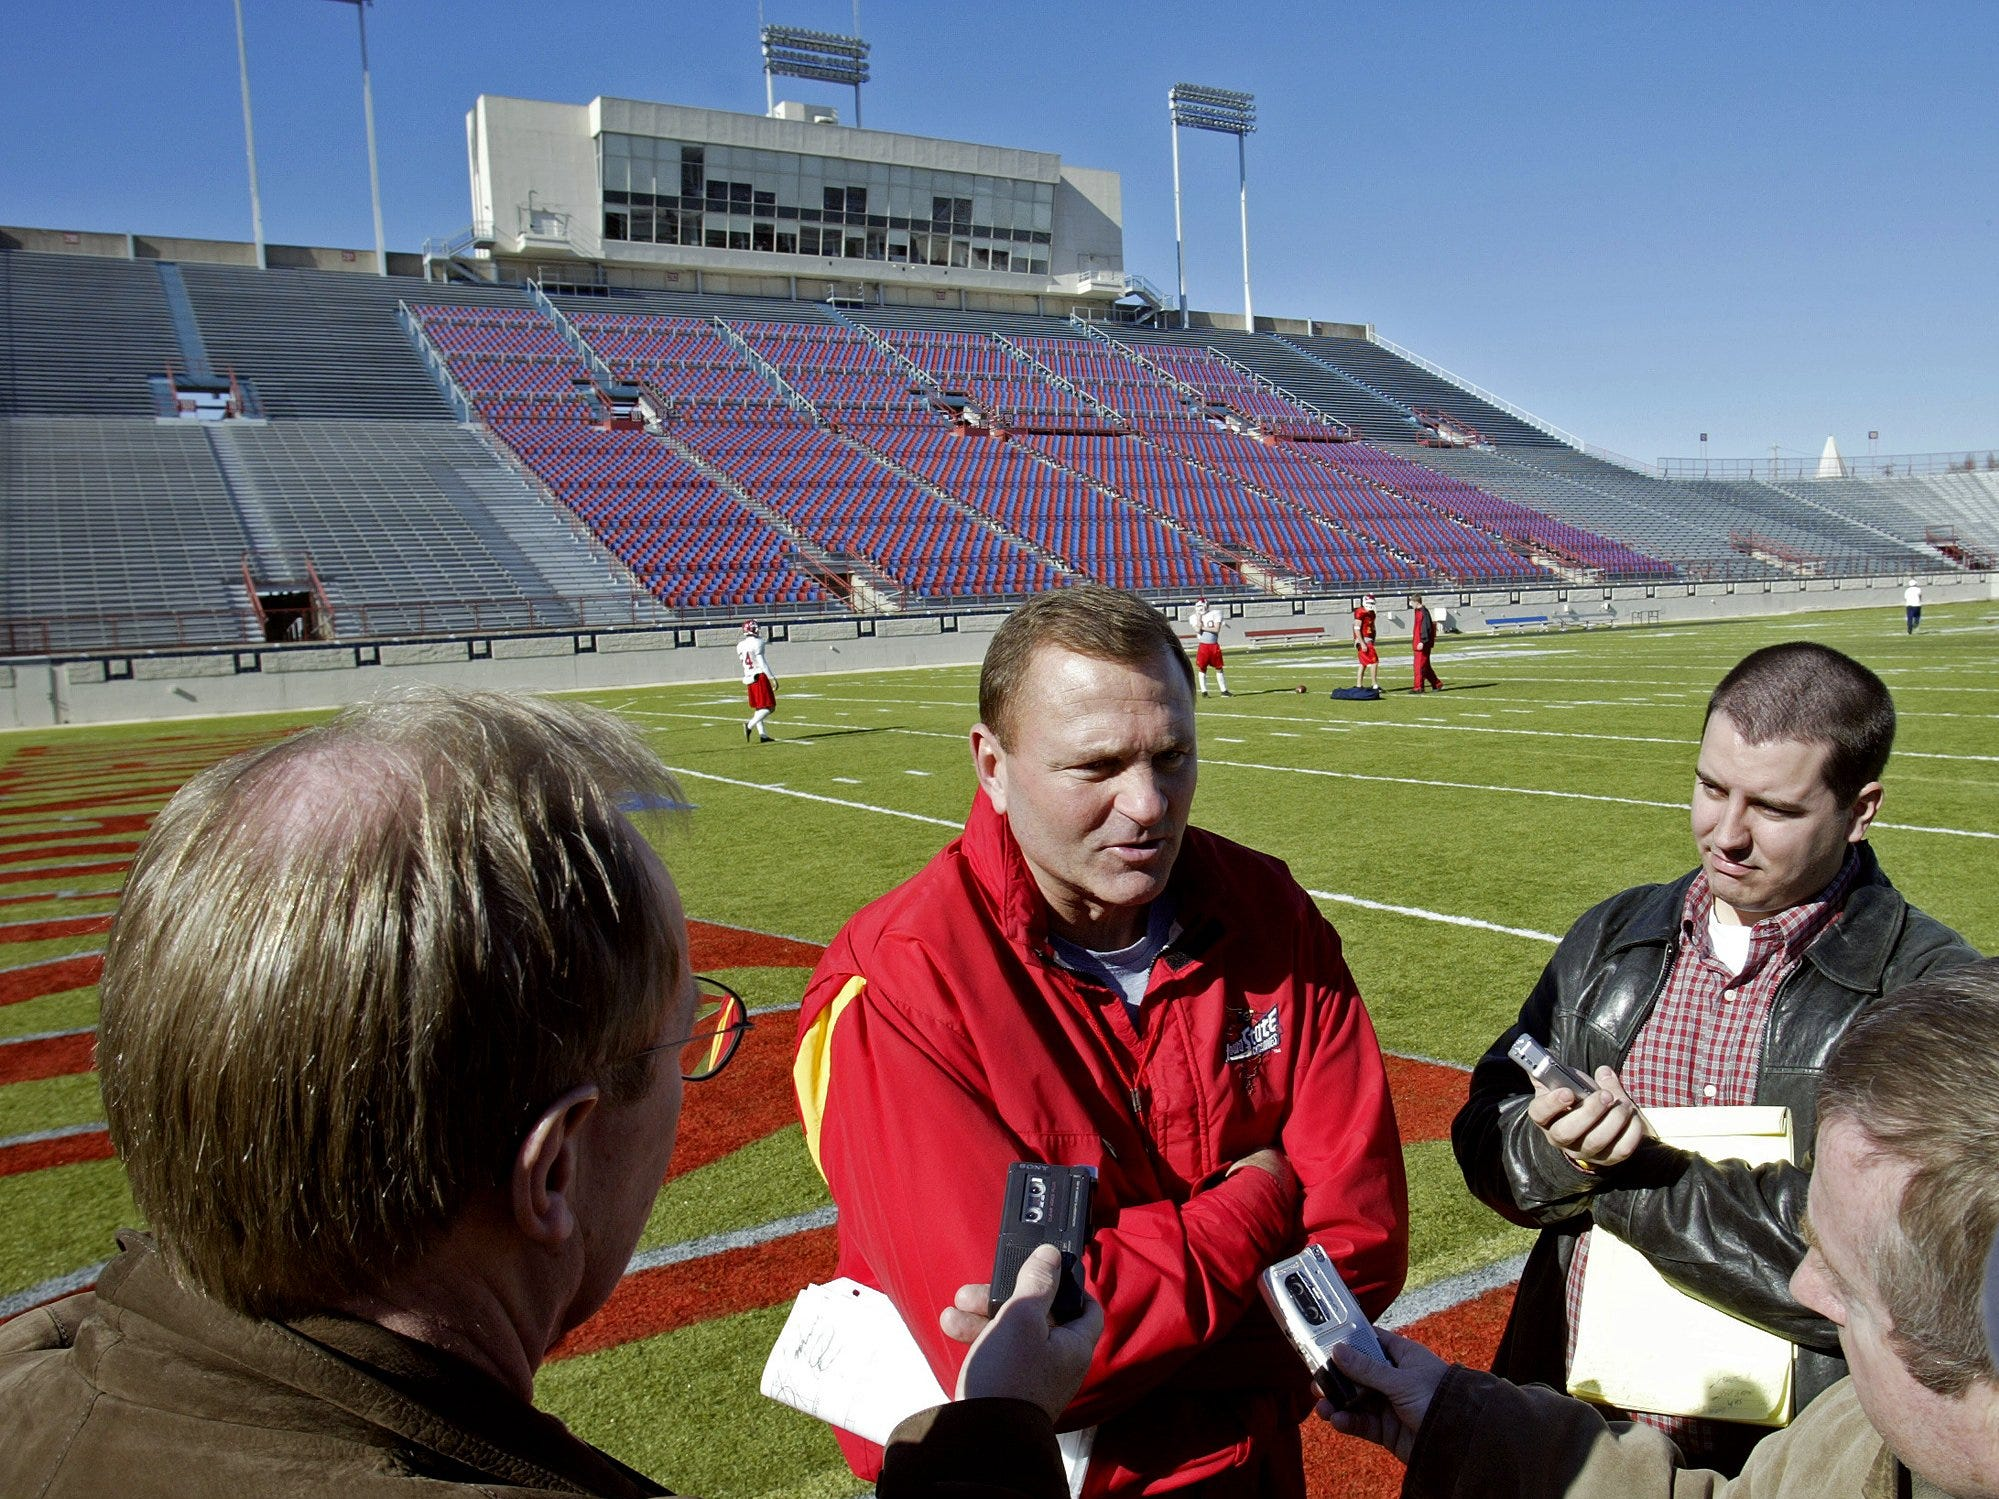 Iowa State head football coach Dan McCarney, center, answers questions from media members after his team finished practice in preparation for the 2004 Independence Bowl.